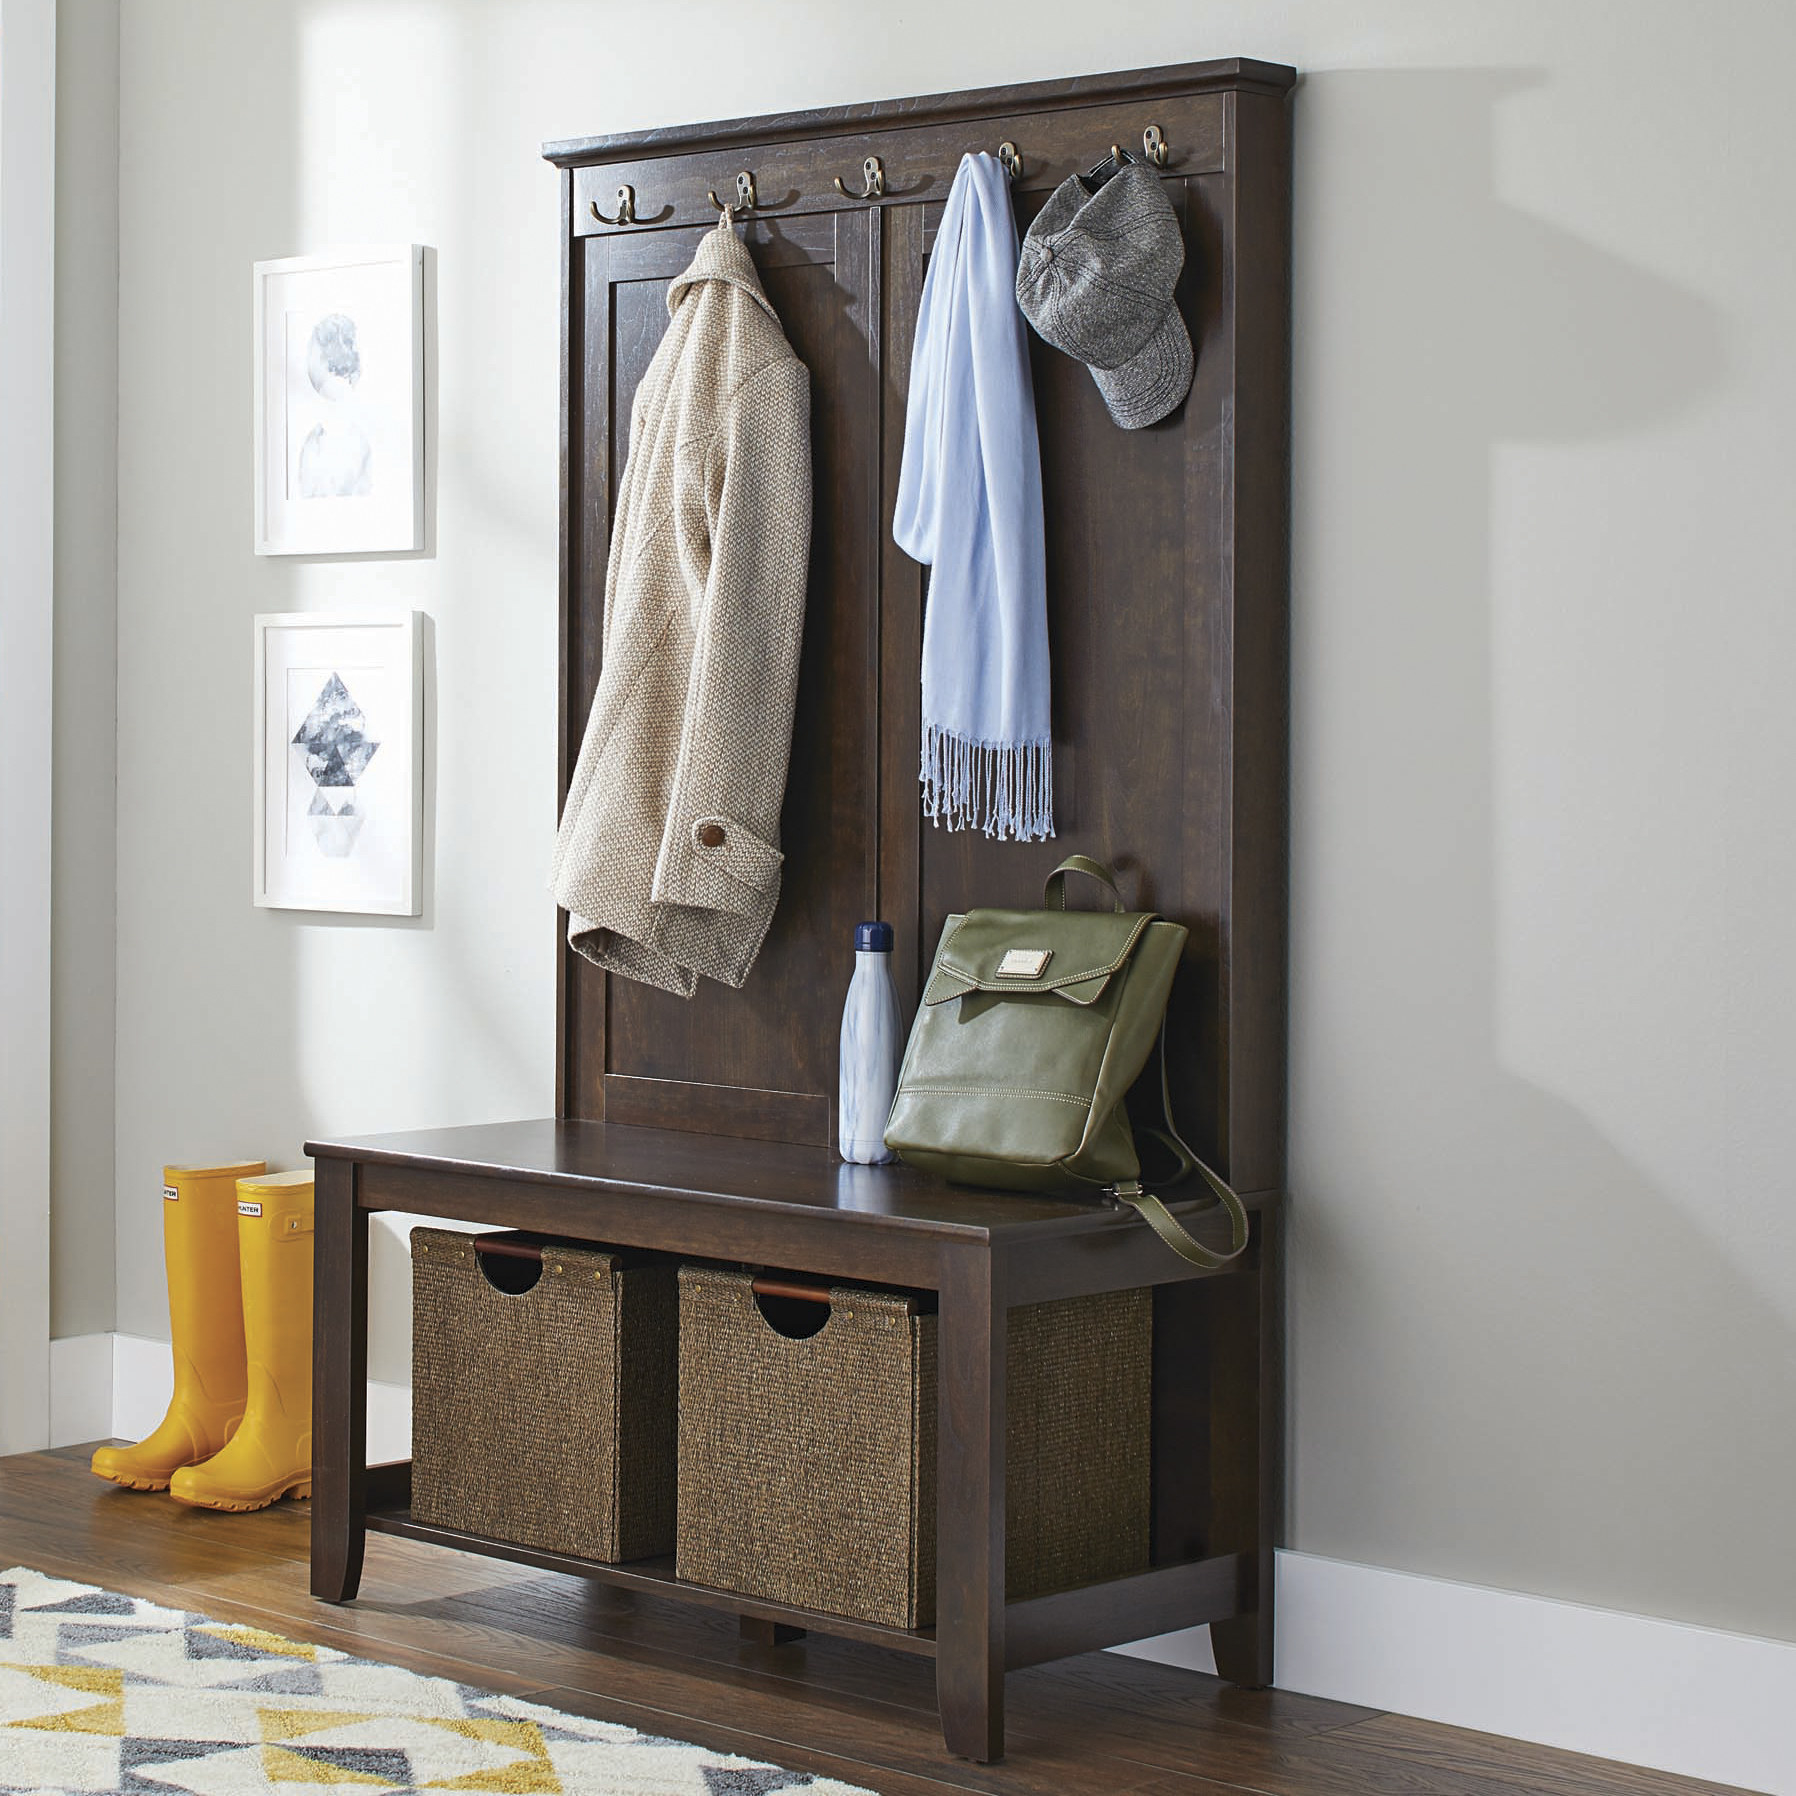 Toffee bench and rack with storage